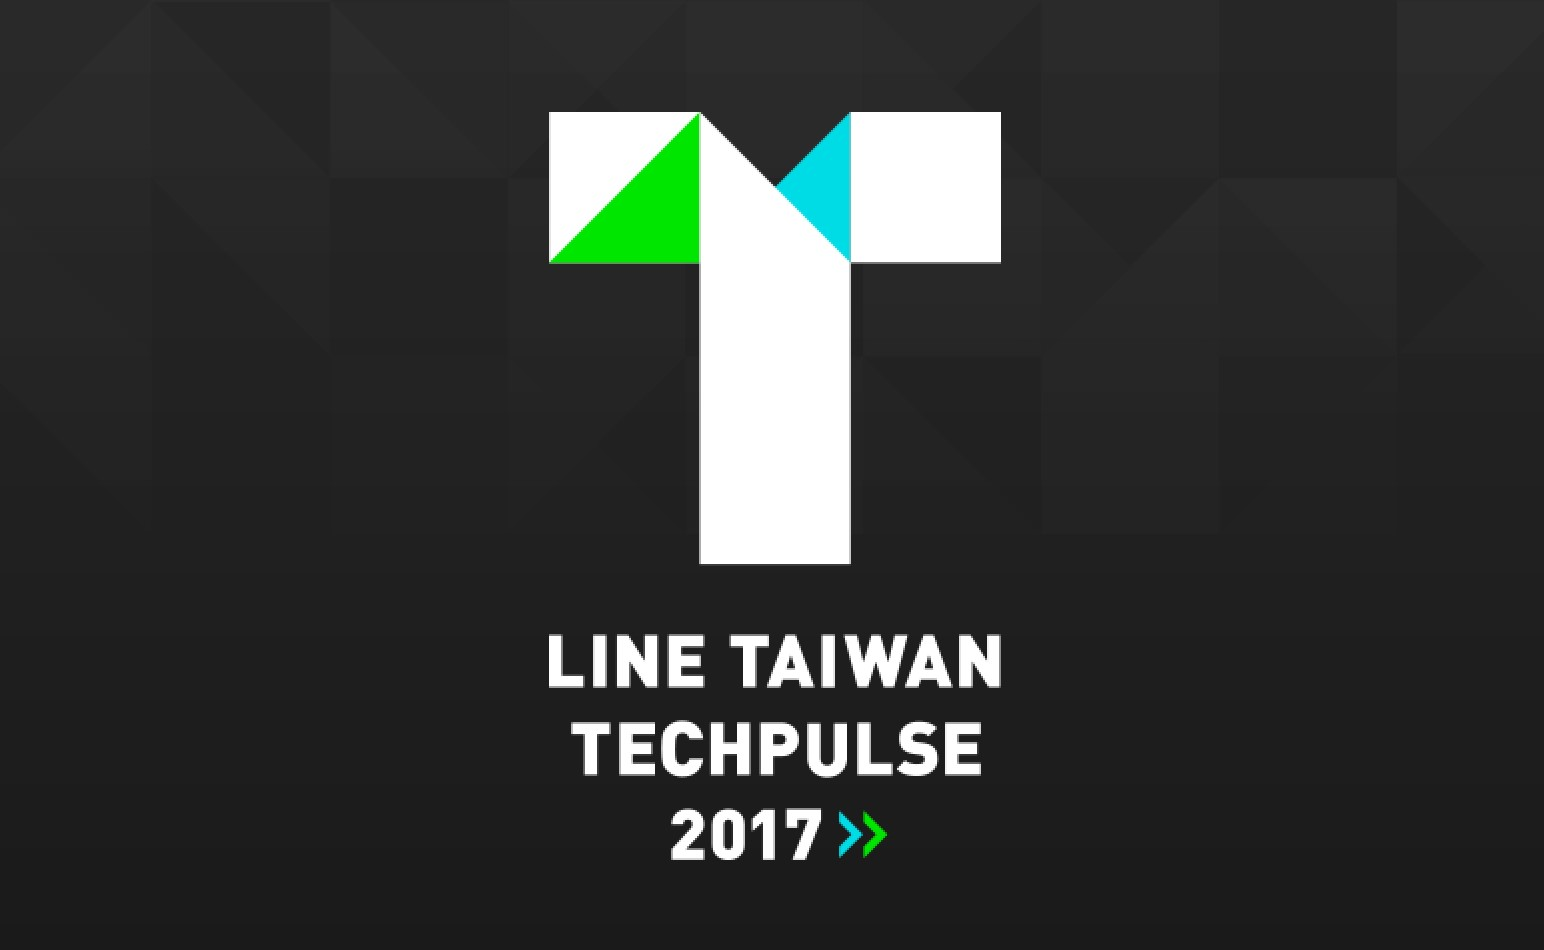 LINE Taiwan TechPulse大會11月3日登場 即日起開放報名